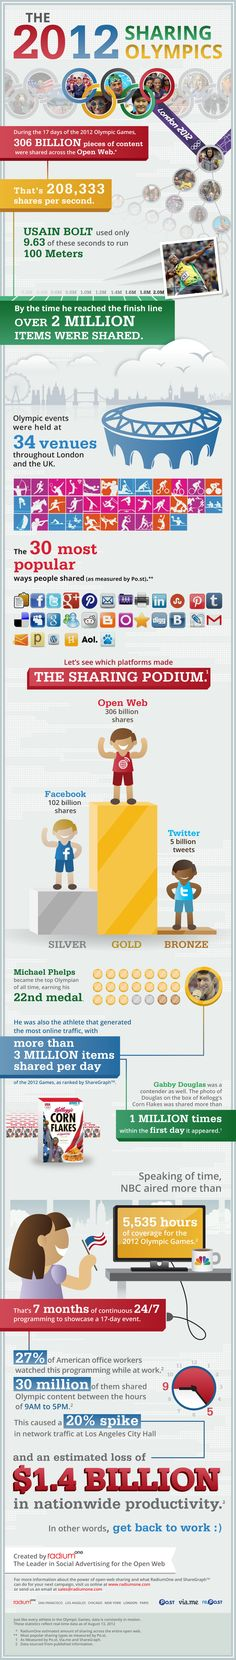 Staggering Social Media Statistics from the Olympics – Infographic